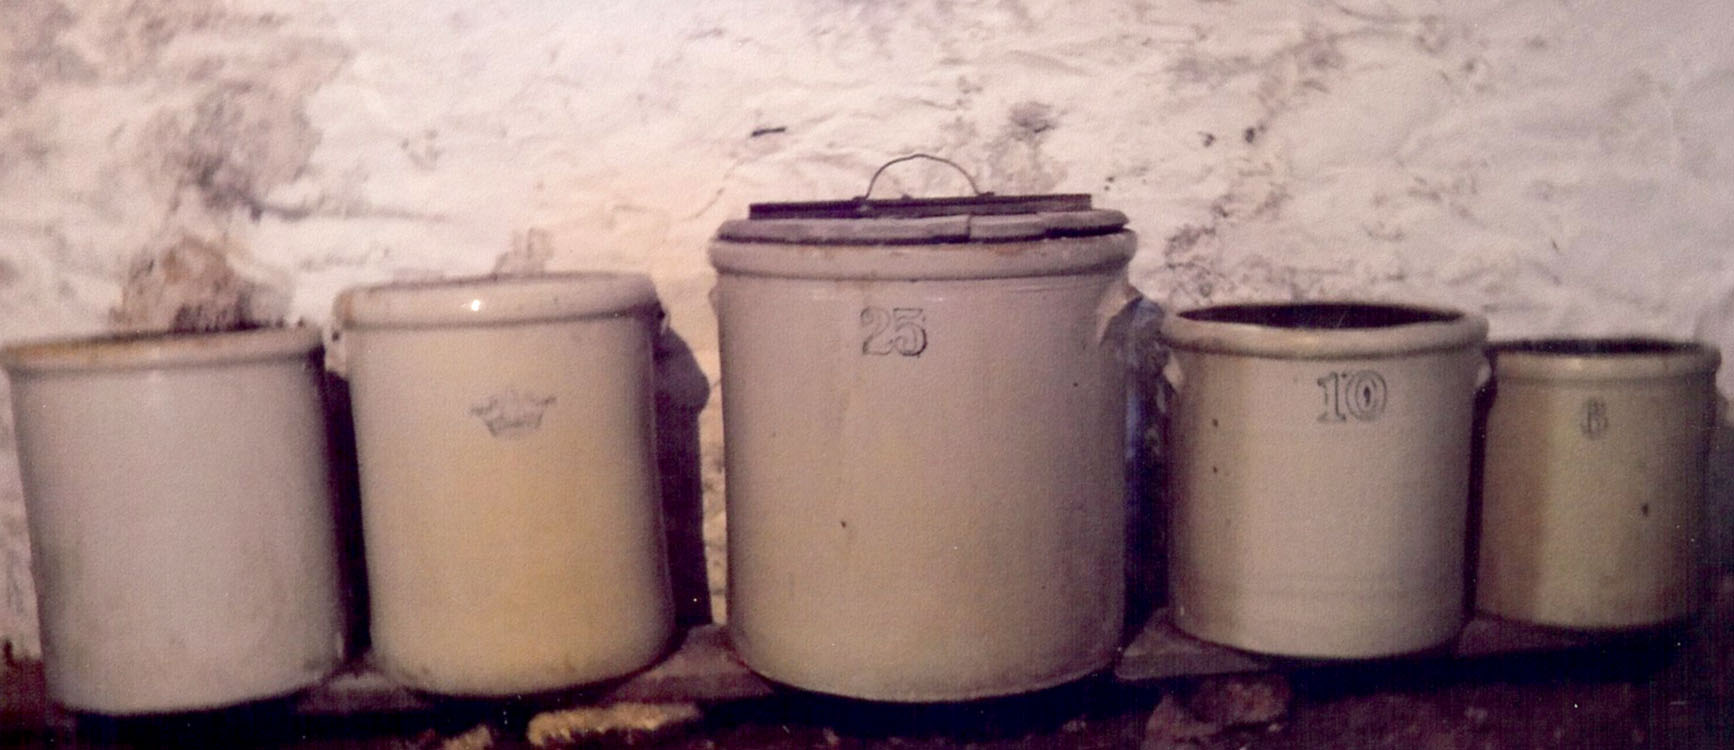 Stoneware crocks were important for folks in their efforts to preserve food for winter months. Shown above from the right: six gallon crock used storing eggs; 10 gallon crock used for making sauerkraut; 25 gallon crock used to preserve pork; smaller crocks may have been used to store salt port. Photograph by Joe Reinschmidt who lives on the Parma farm where he was raised.